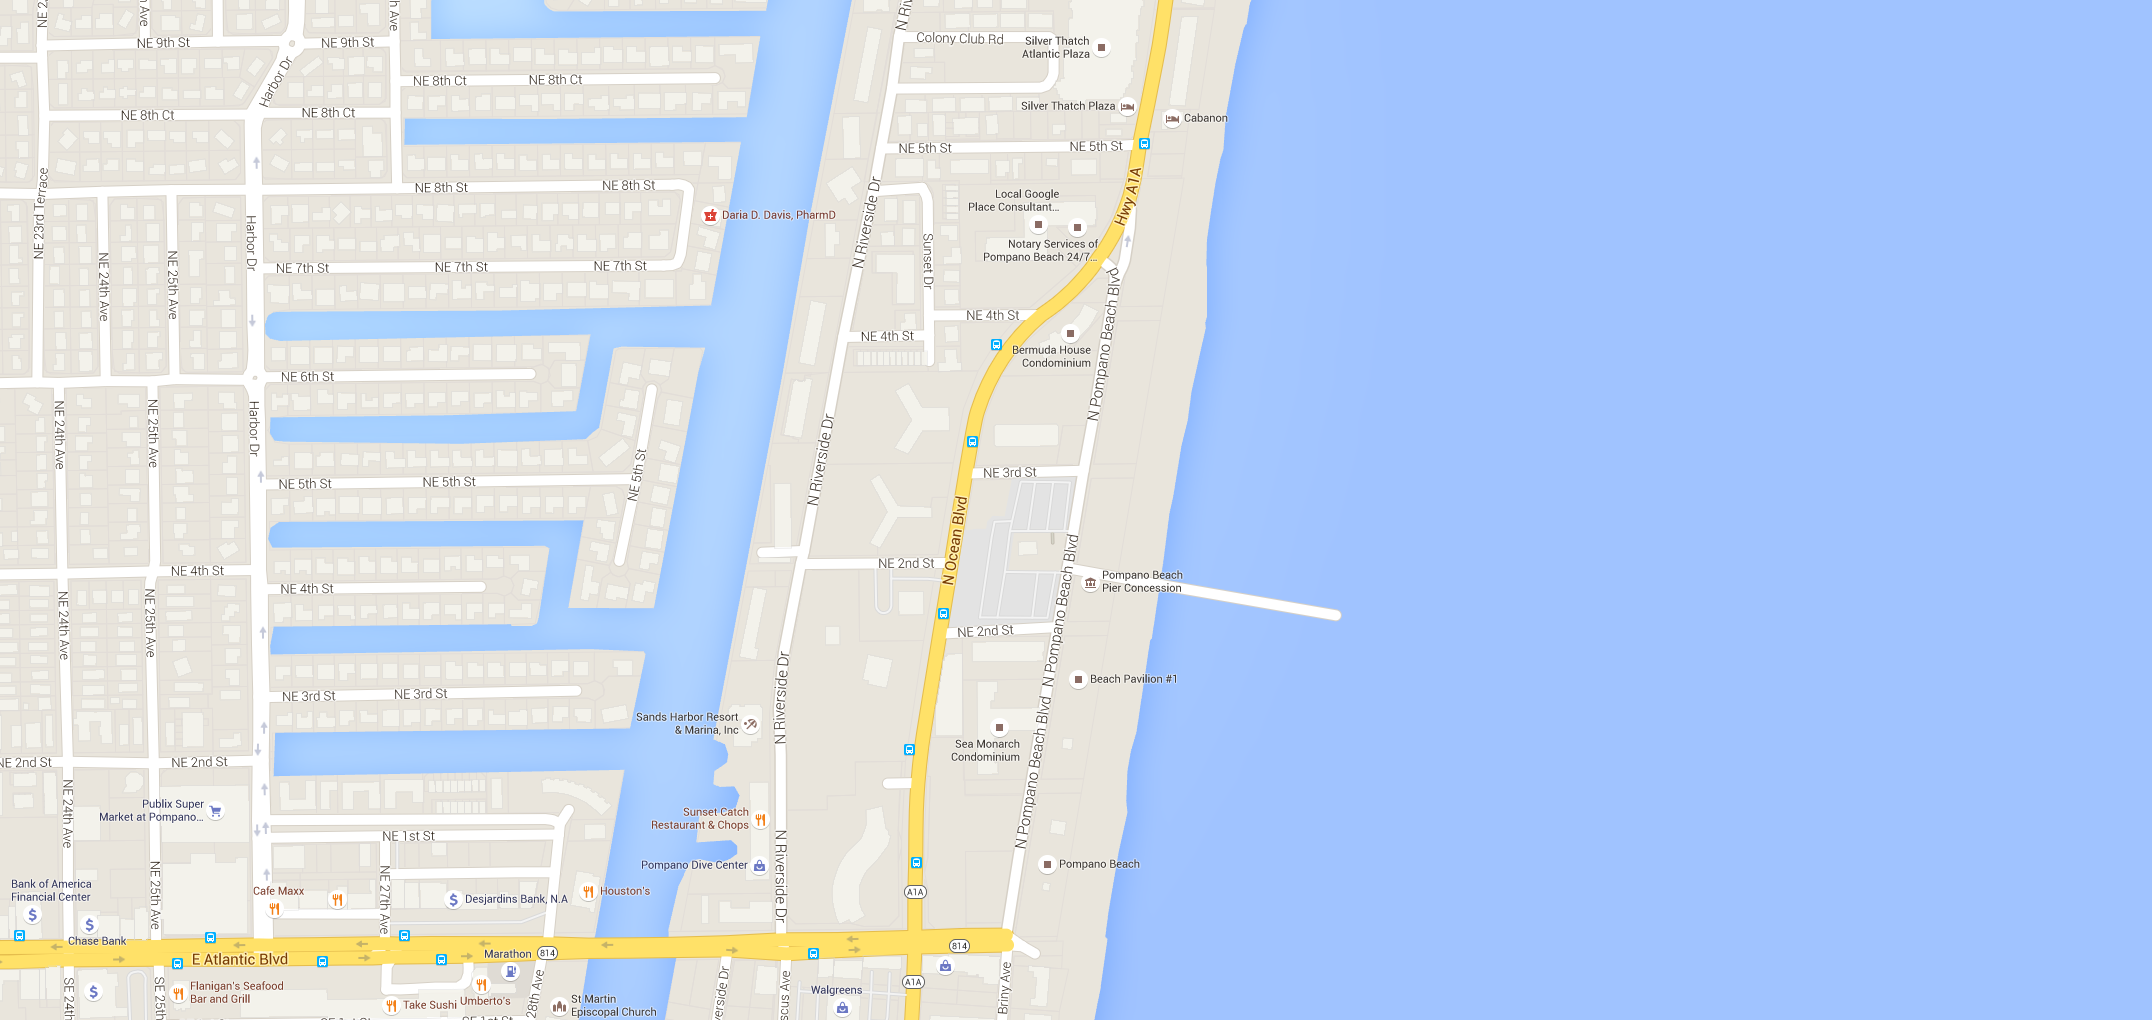 Pompano Beach on map of san diego beaches, map of south daytona fl, map of tampa and pompano,